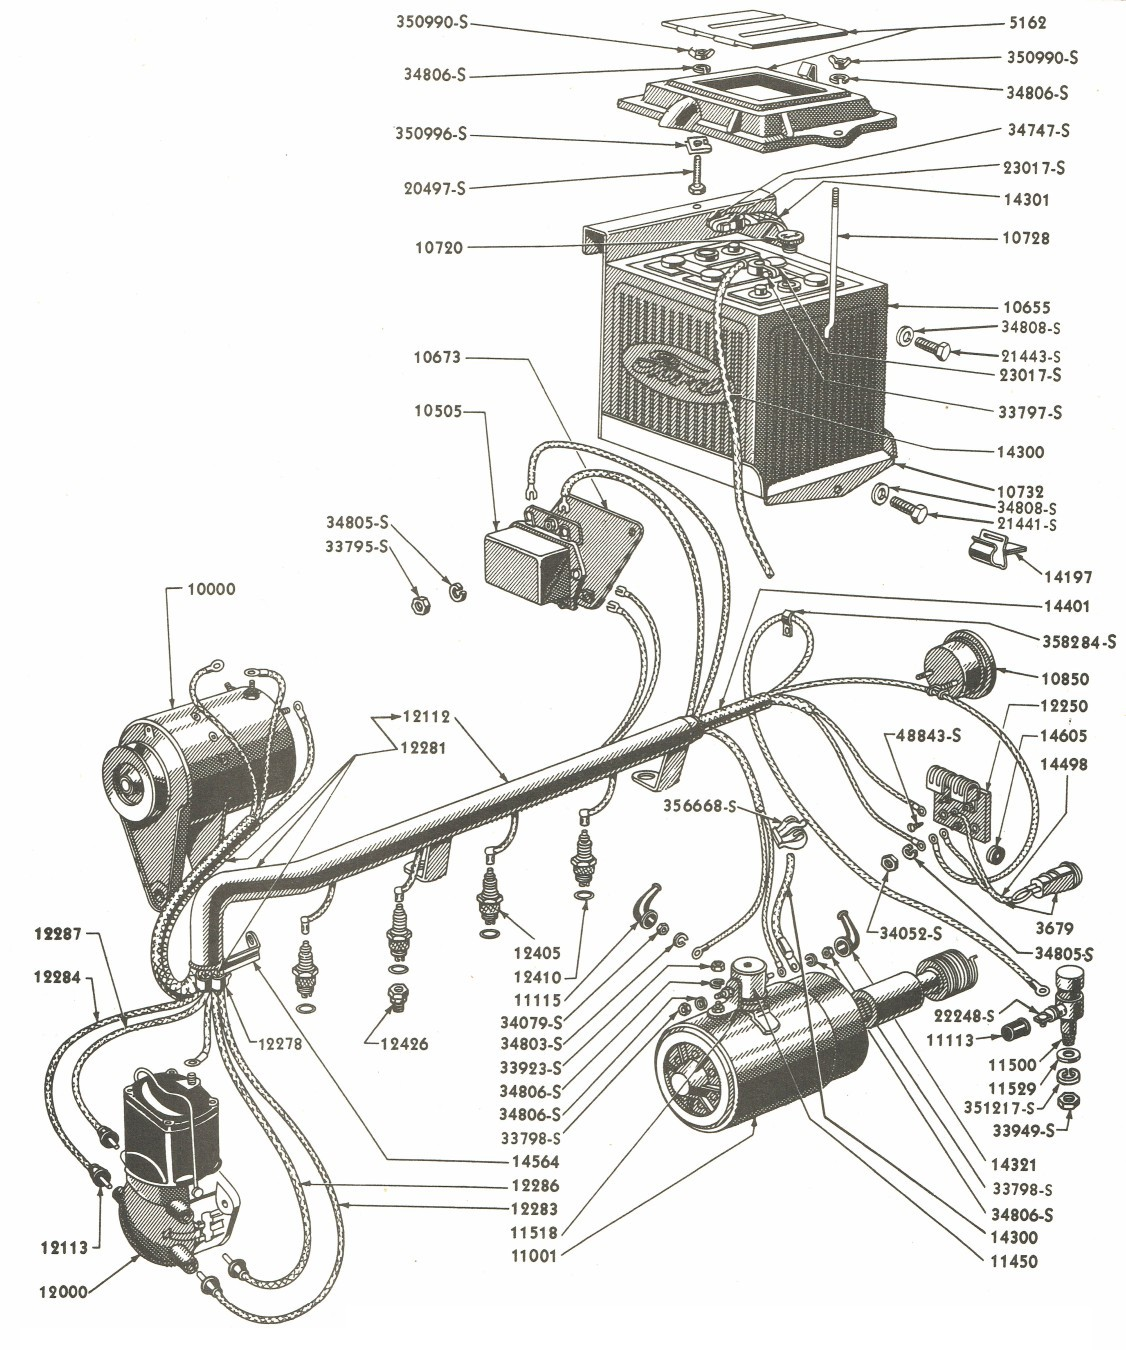 ford tractor wiring harness - wiring diagram base follow -  follow.jabstudio.it  jab studio